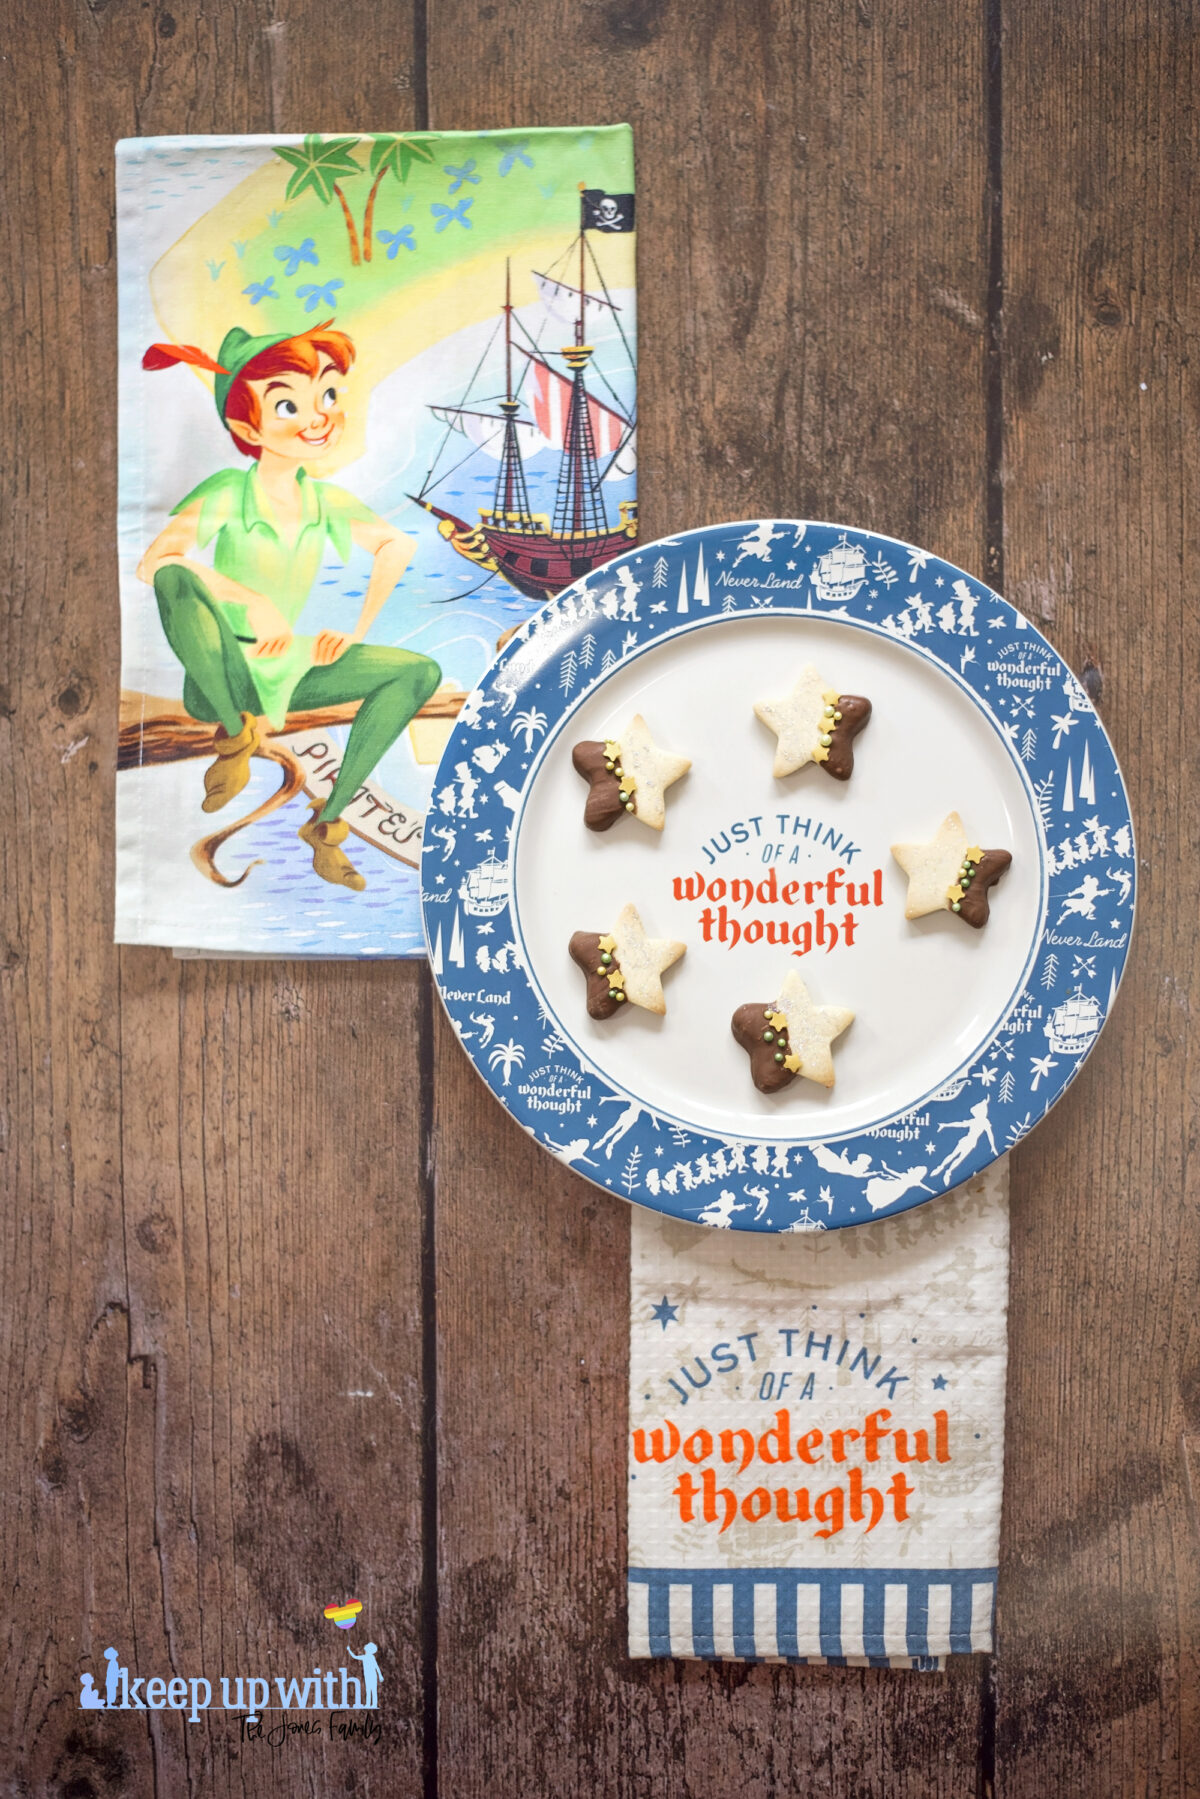 """Image shows a wooden tabletop with ShopDisneyUK's Peter Pan tea towel set and a Peter Pan dinner plate reading """"just think of a wonderful thought"""" on it.  On the Disney plate are small star shaped biscuits half of each Peter Pan Second Star to the Right Biscuit is dipped in chocolate and  the other is sprinkled with silver edible glitter.  The dividing line is decorated with yellow star sprinkles and green pearl shaped sprinkles. Image by Keep Up With The Jones Family"""